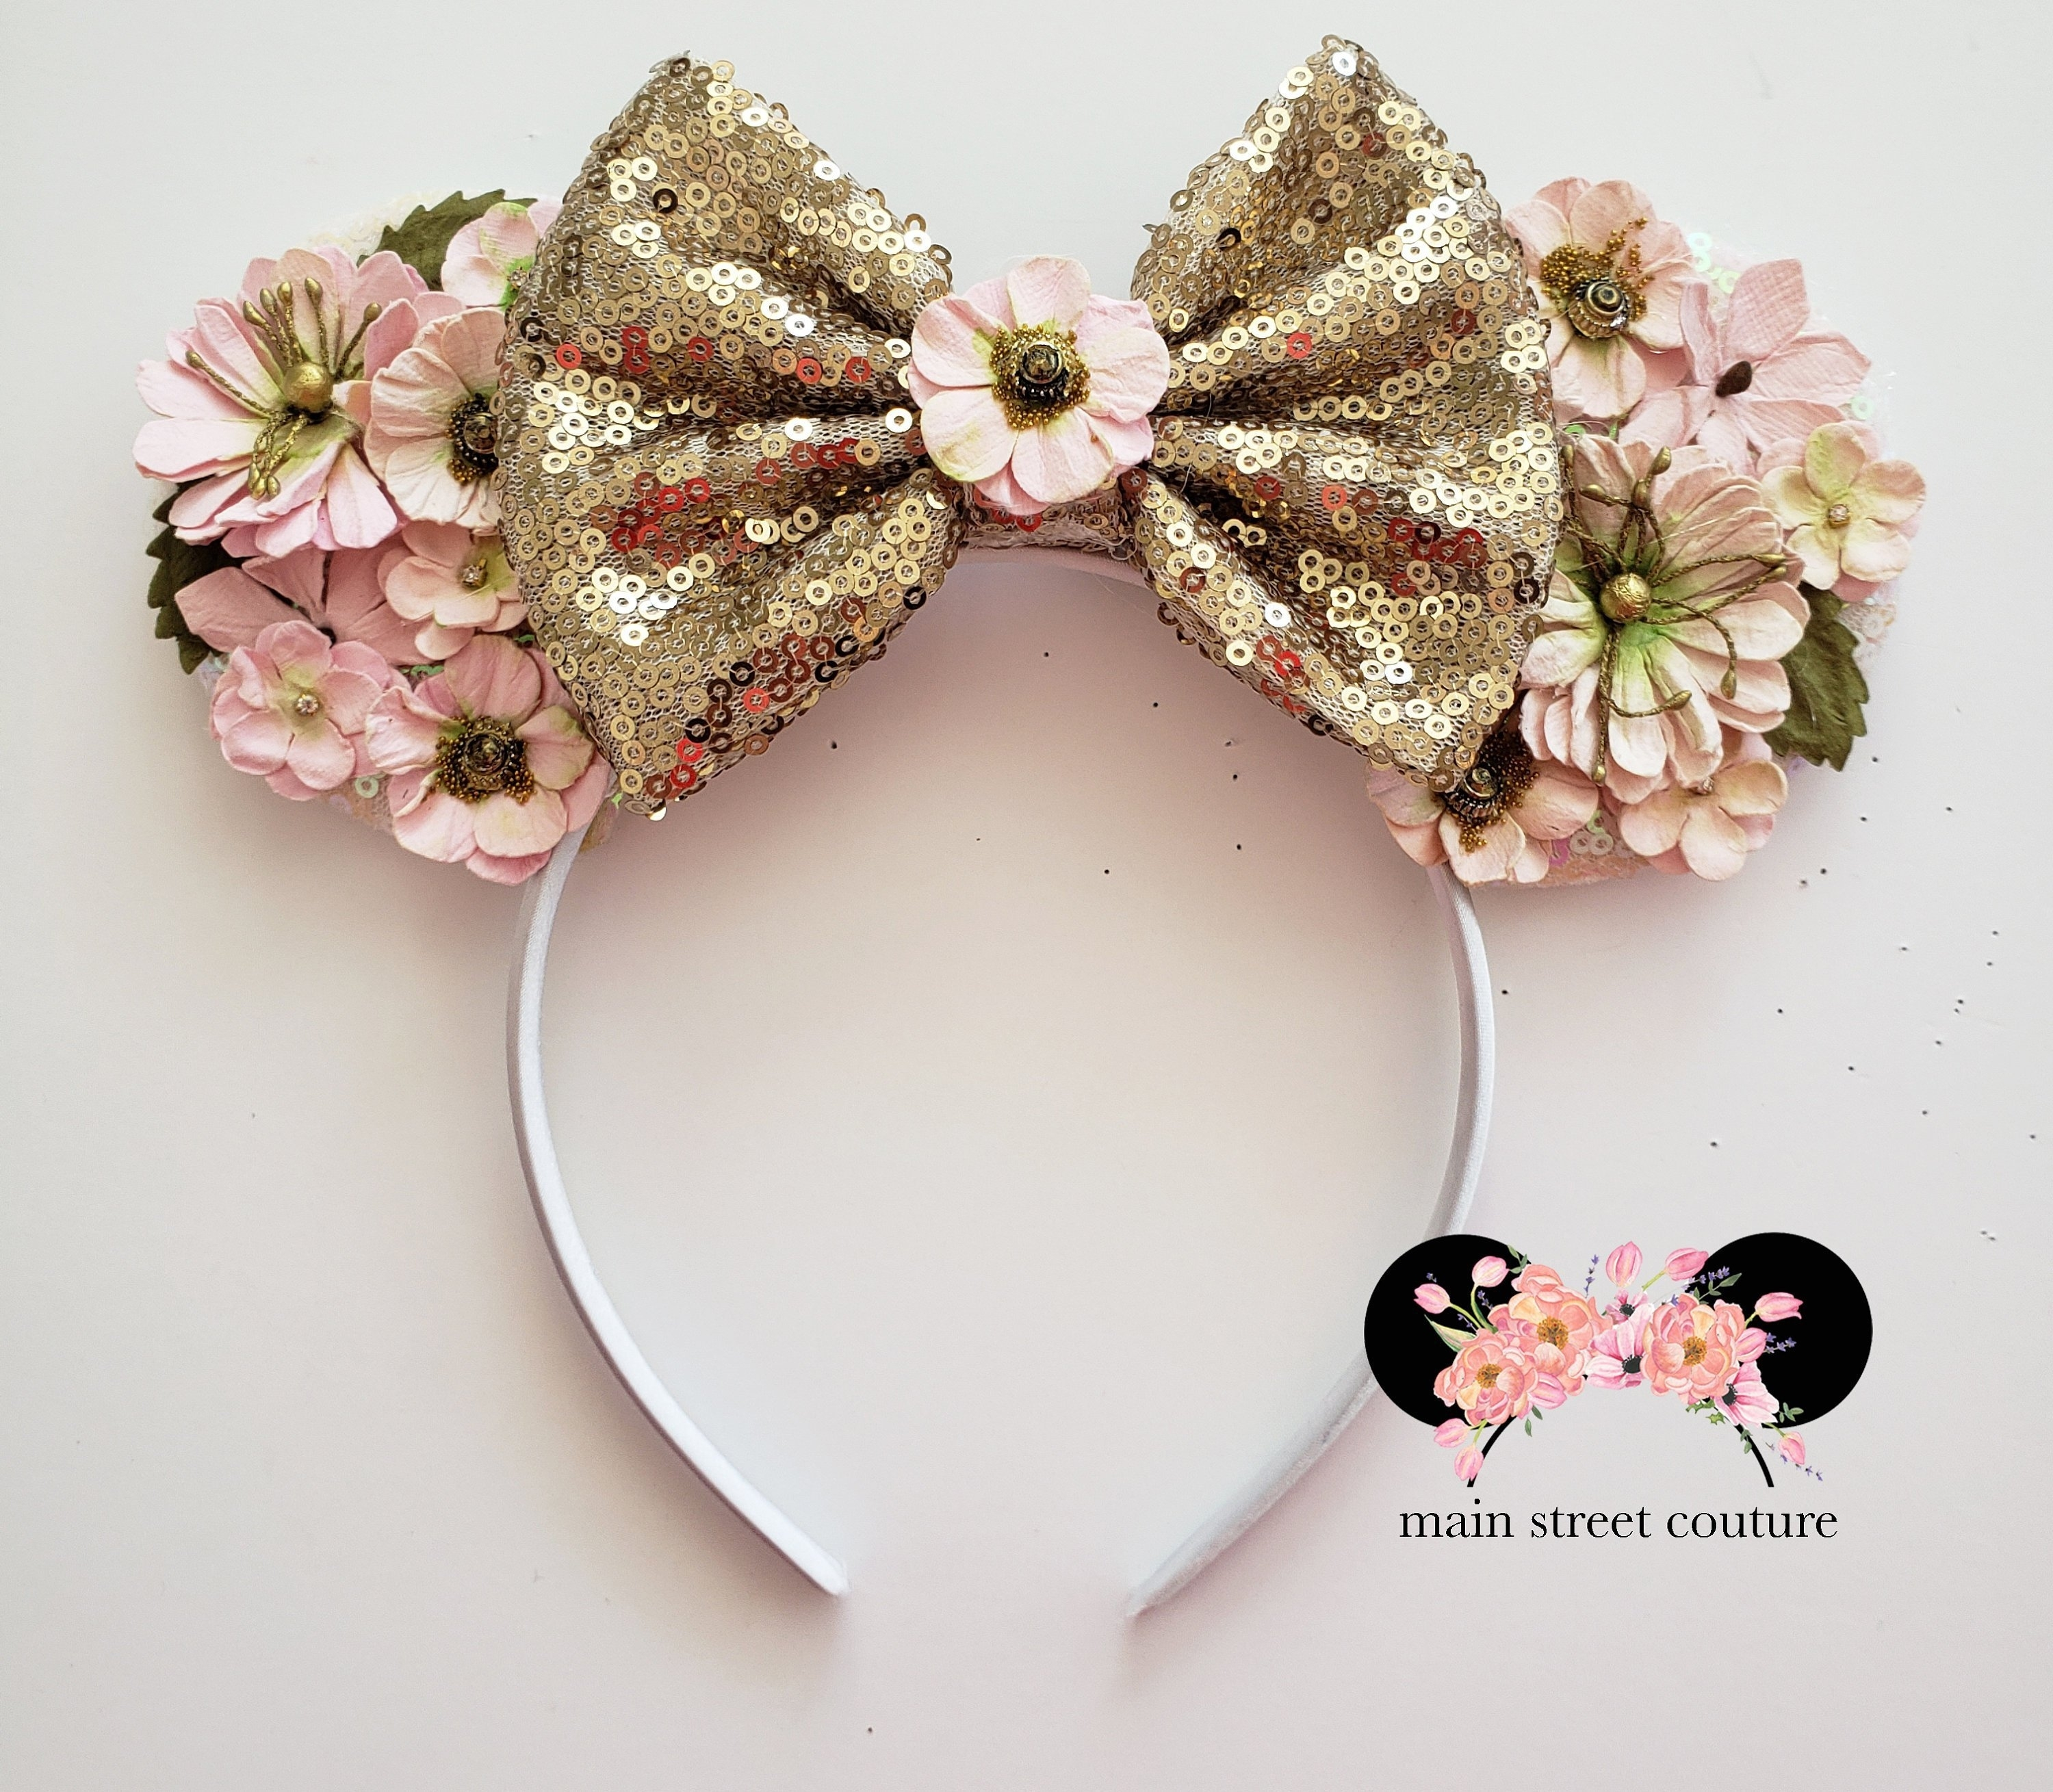 Flower And Garden Festival Ears Rose Gold Minnie Ears Floral   Etsy with regard to Flower And Garden Festival Headband